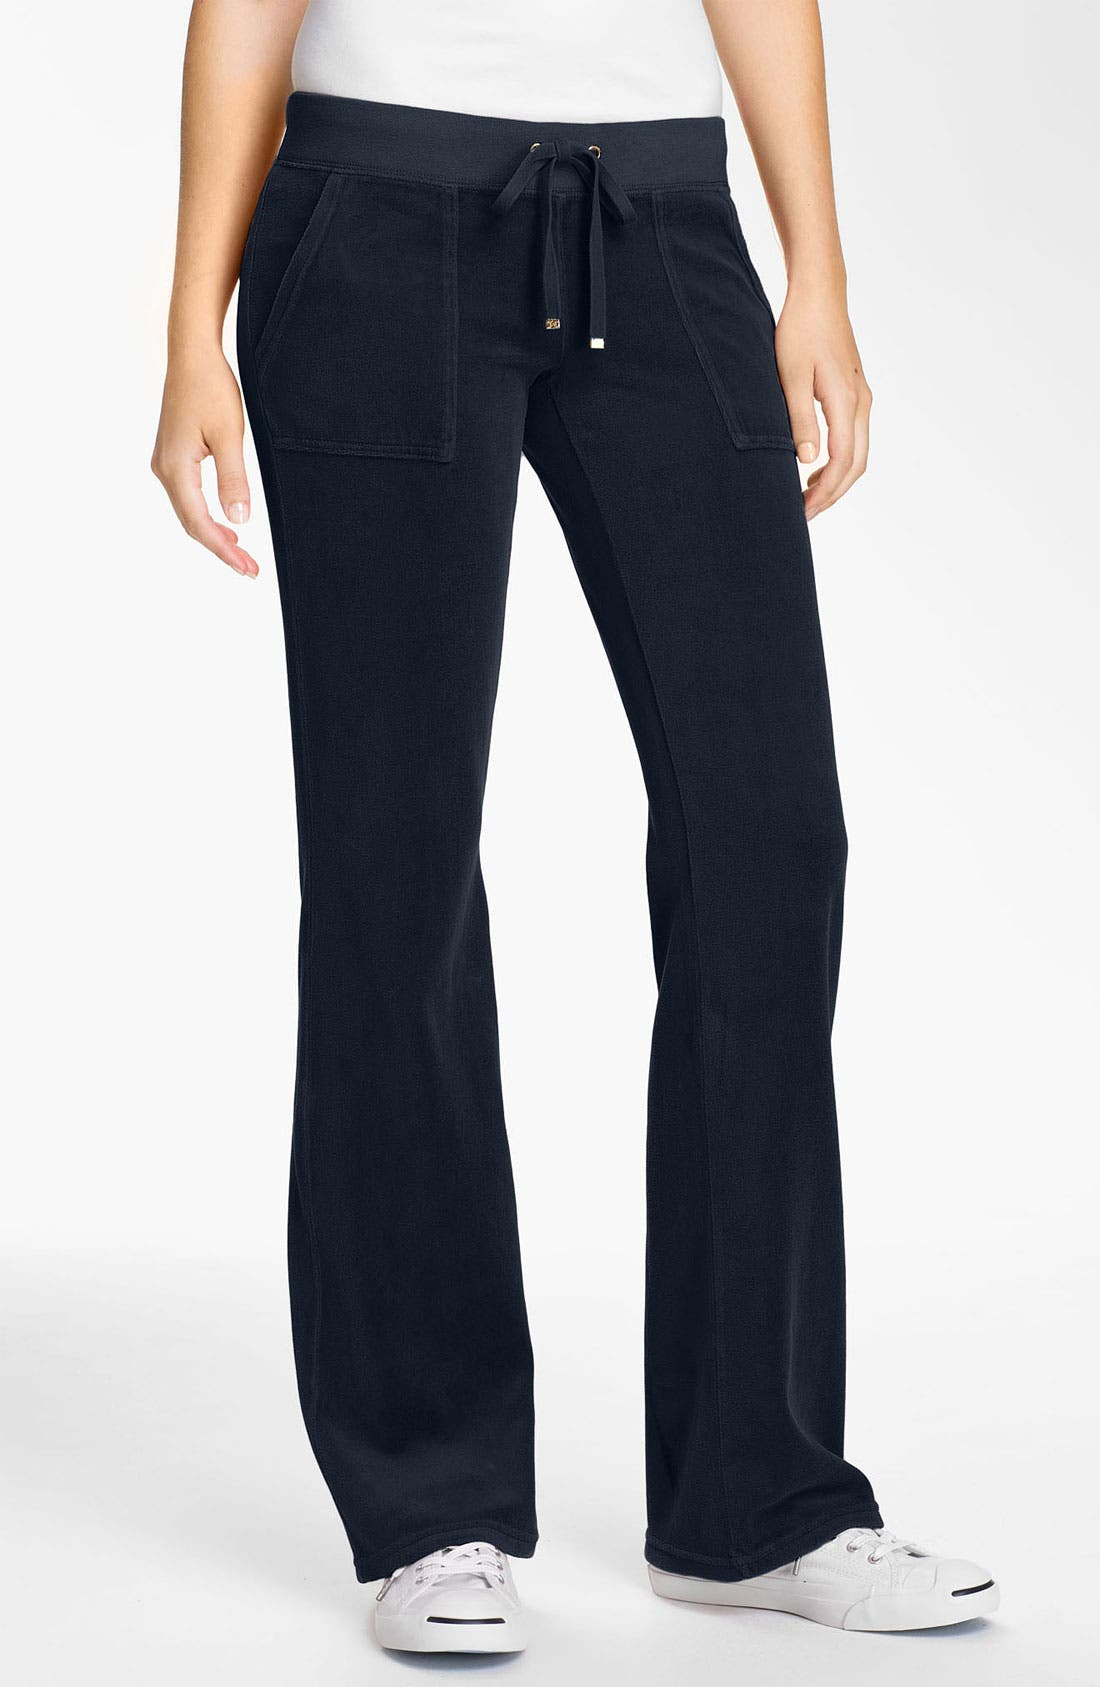 Alternate Image 1 Selected - Juicy Couture Velour Pocket Pants (Online Only)